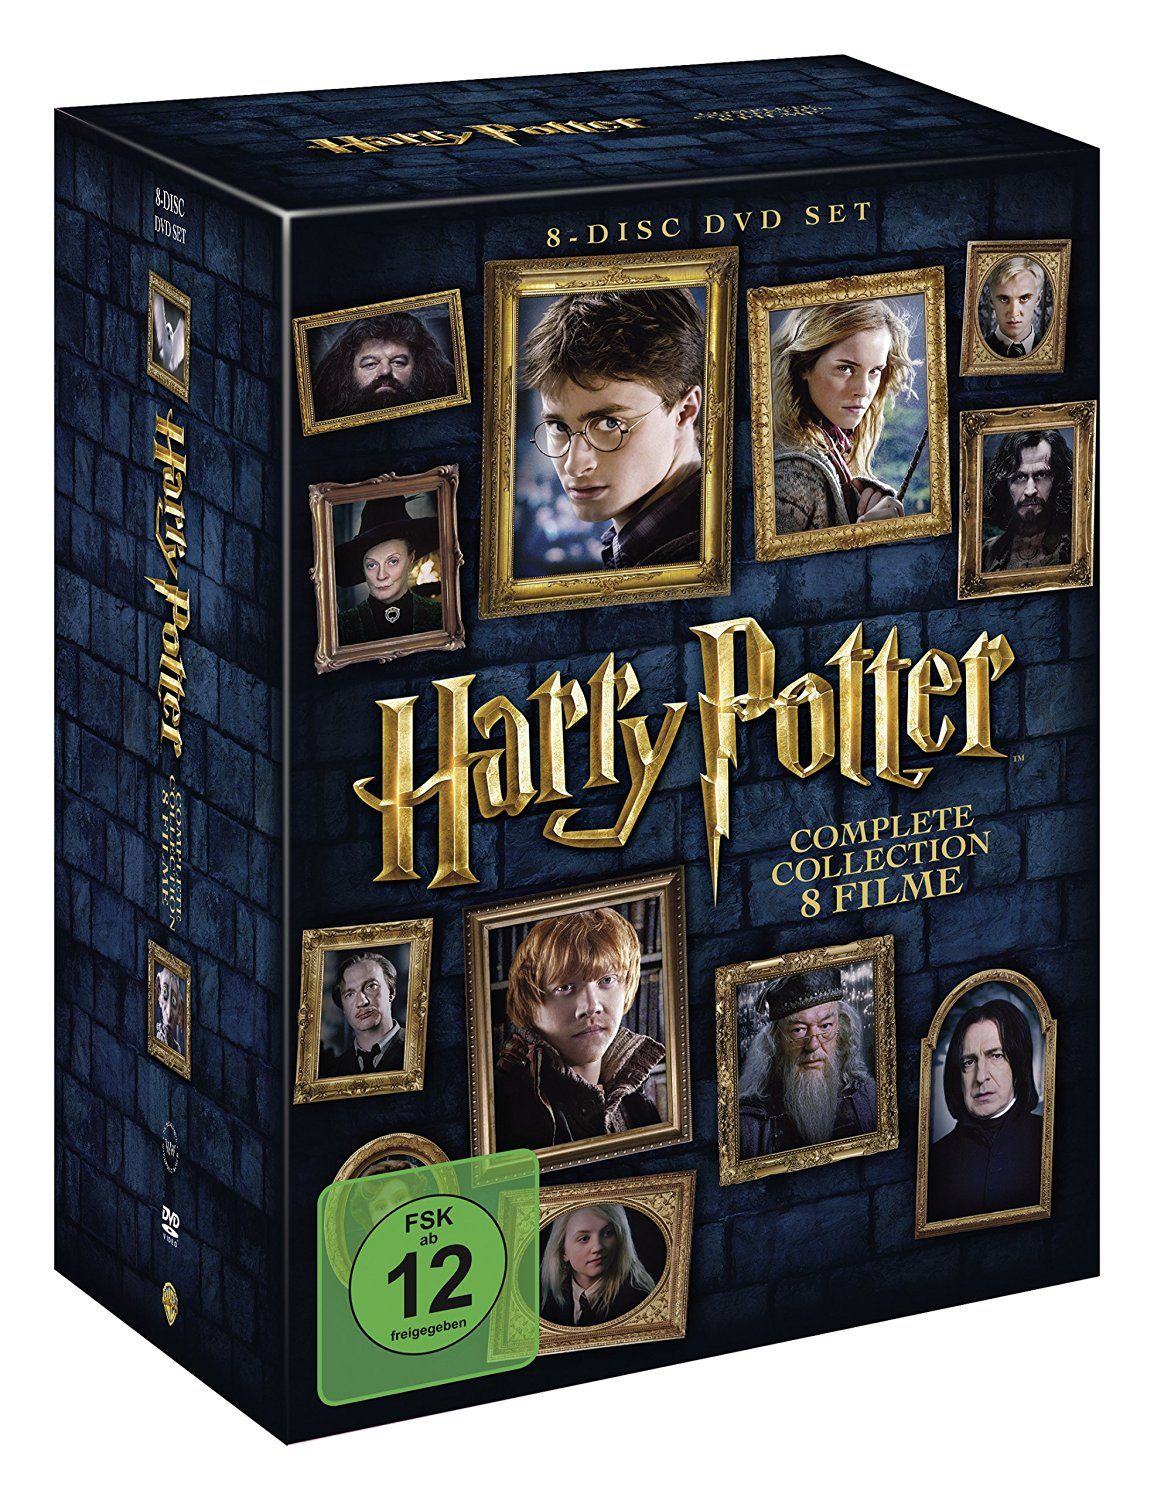 Harrypotter The Complete Collection Gift Movie Bestmovies Http Amzn To 2hjokxt Harry Potter Film